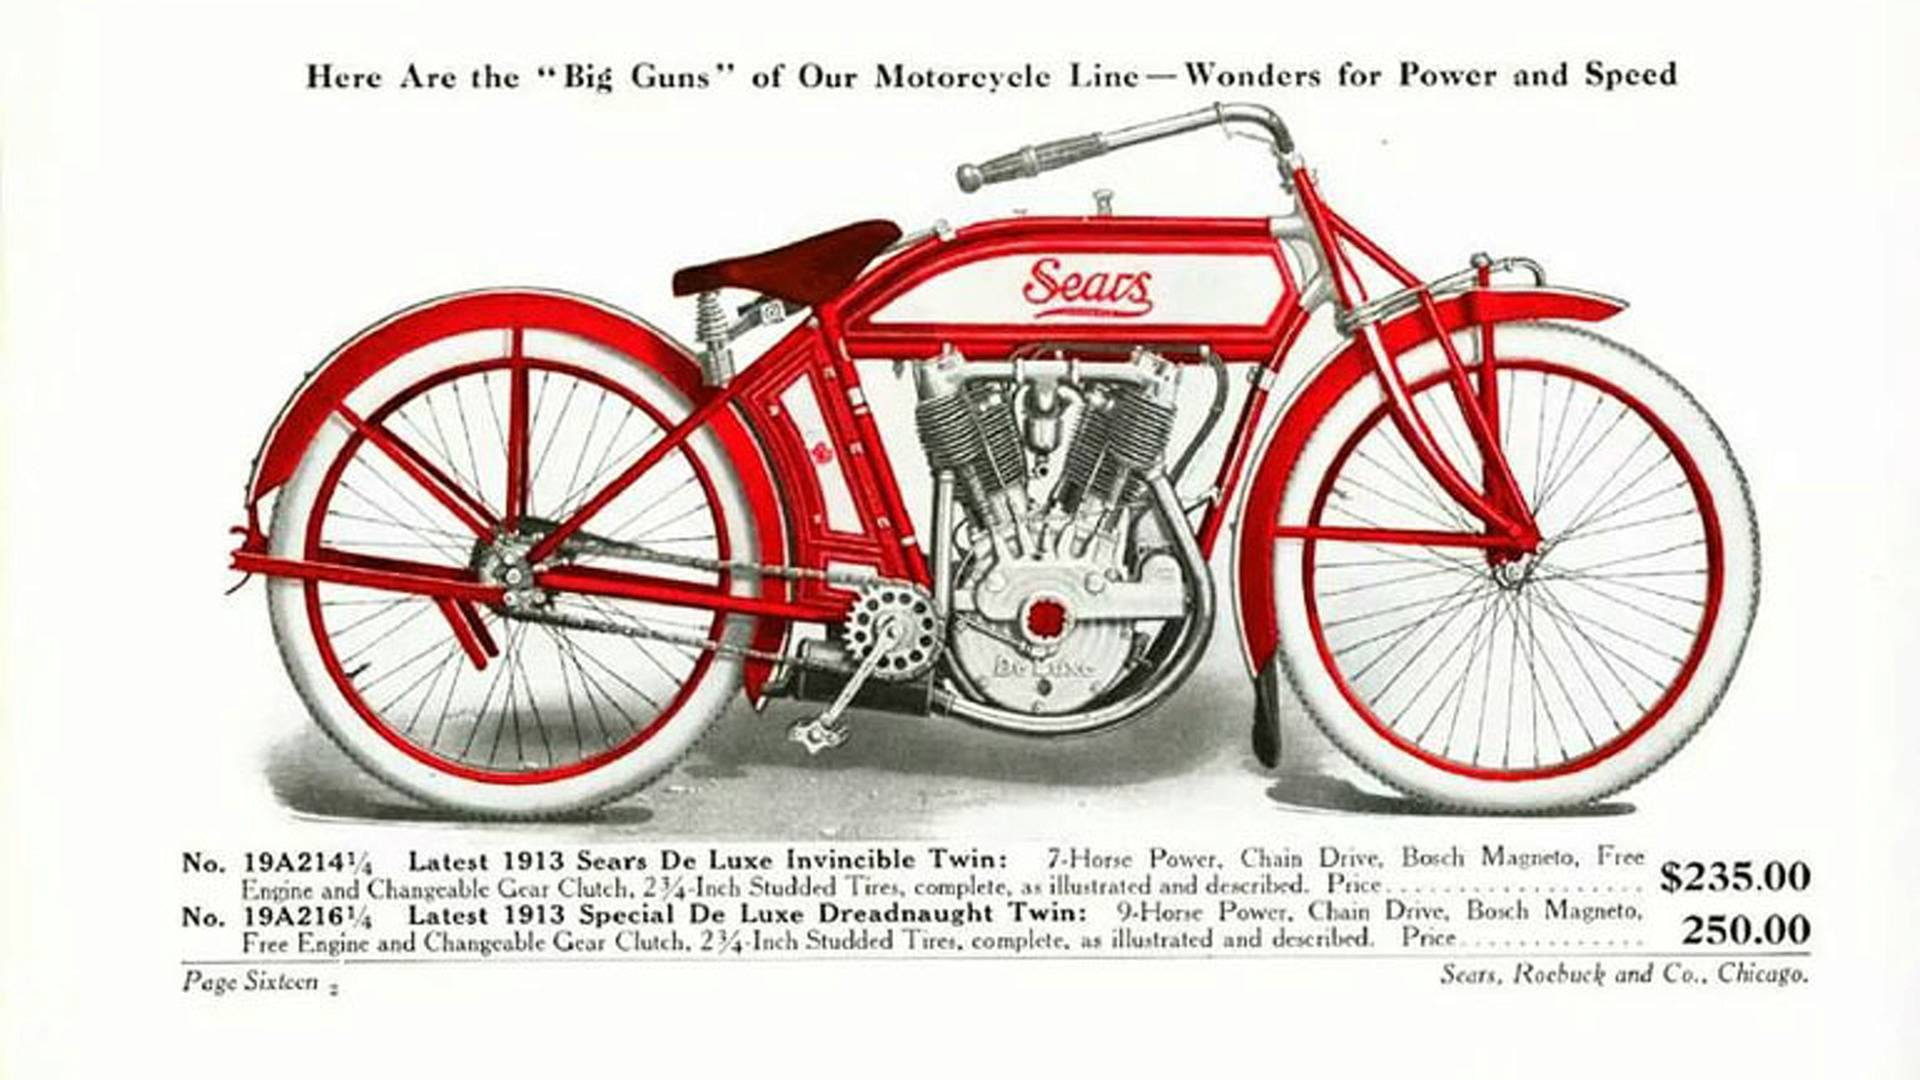 cycleweird-moto-by-mail-part-1-sears-motorcycles.jpg